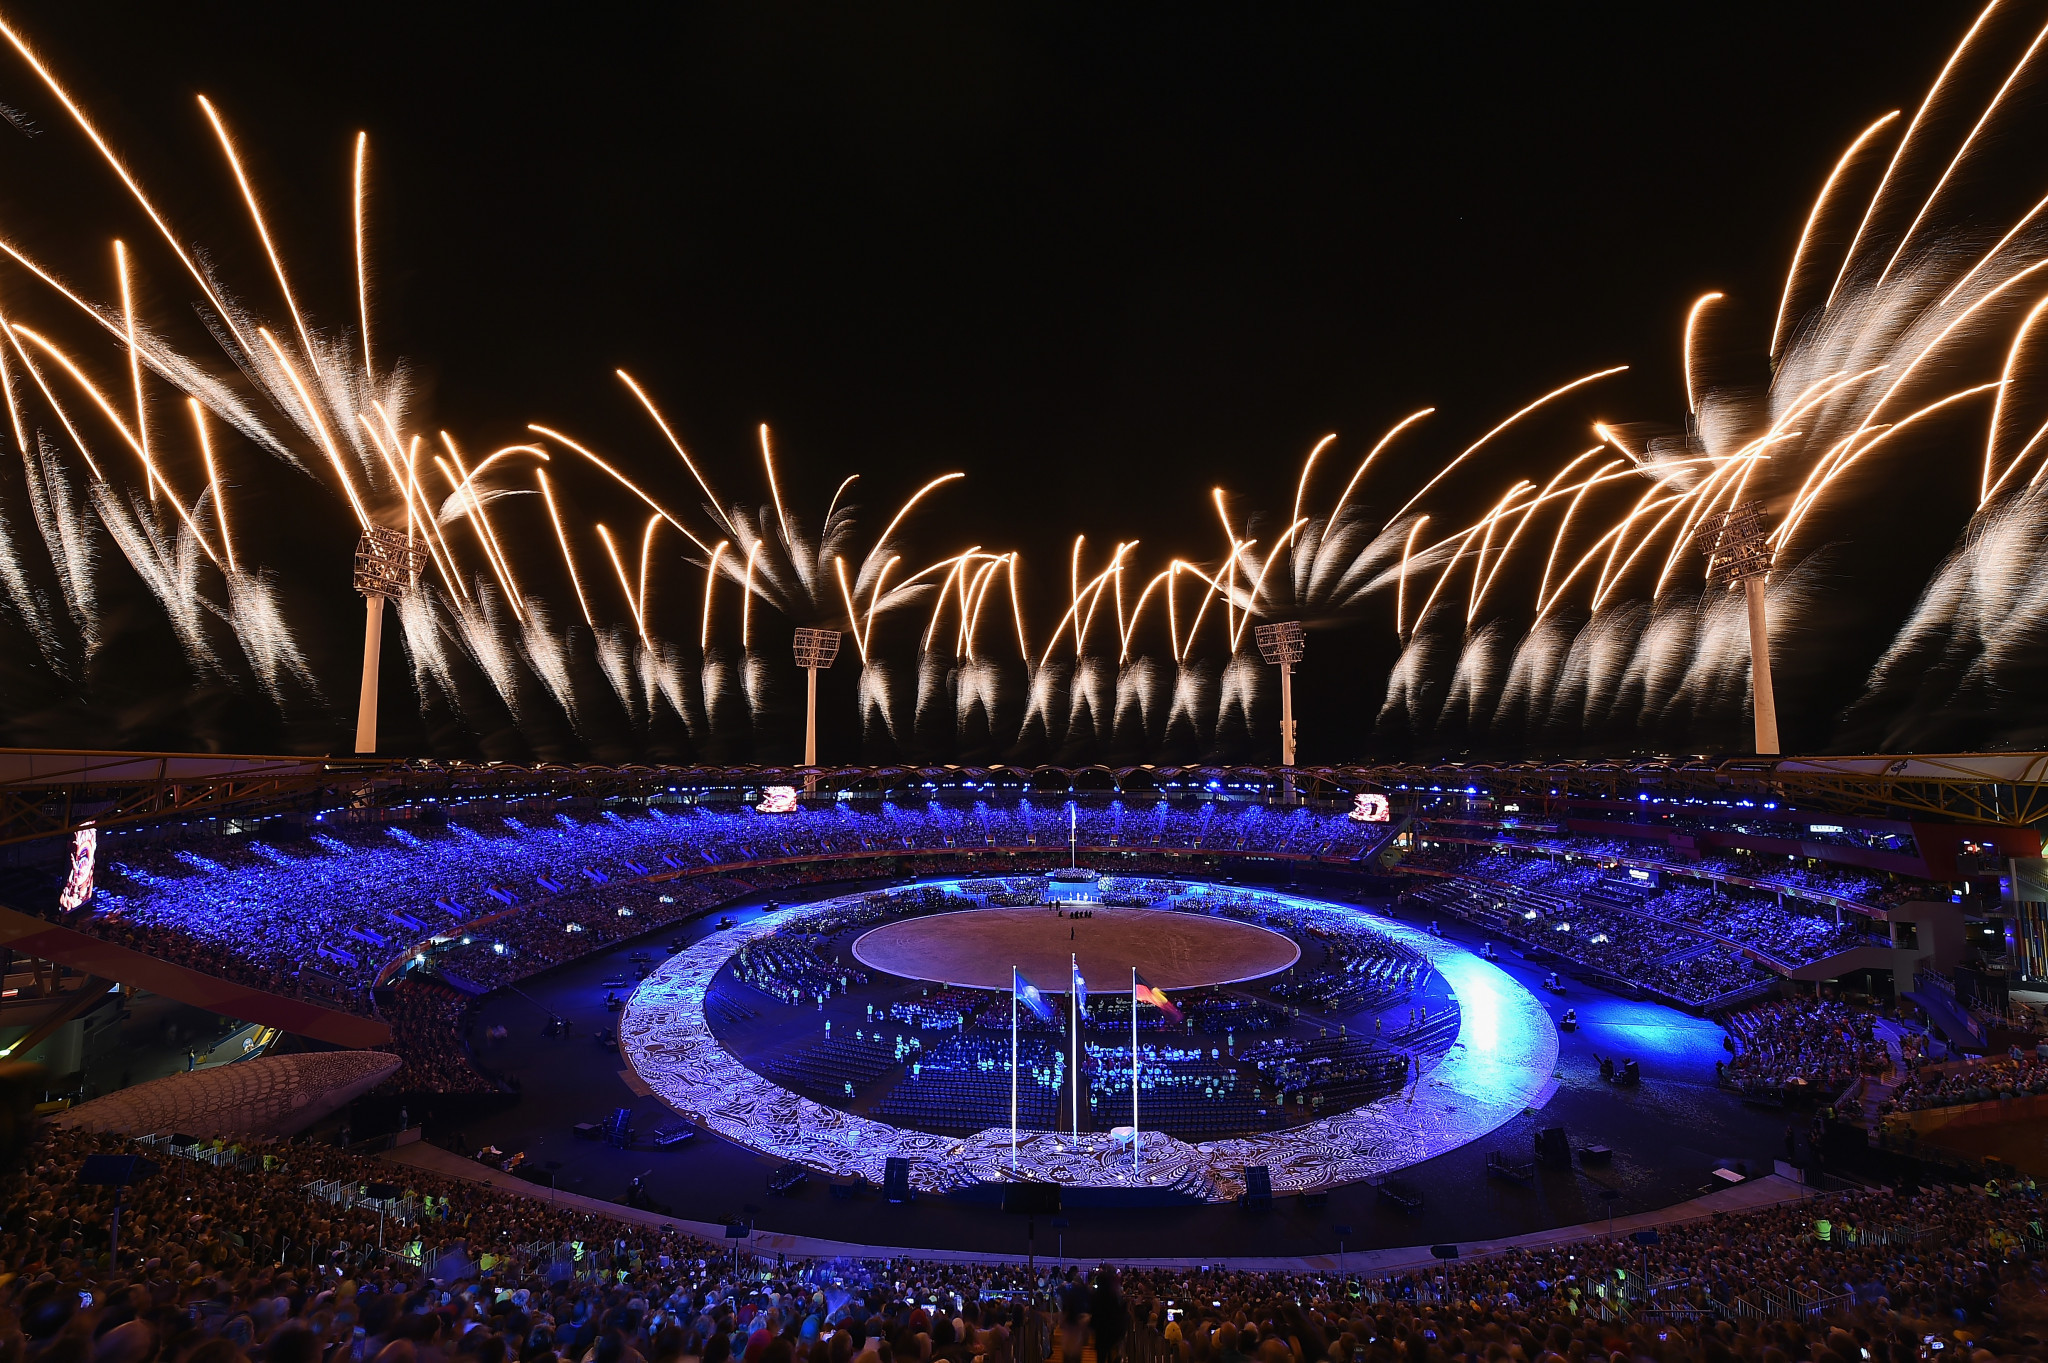 Sri Lanka unsuccessfully bid for the 2018 Commonwealth Games ©Getty Images